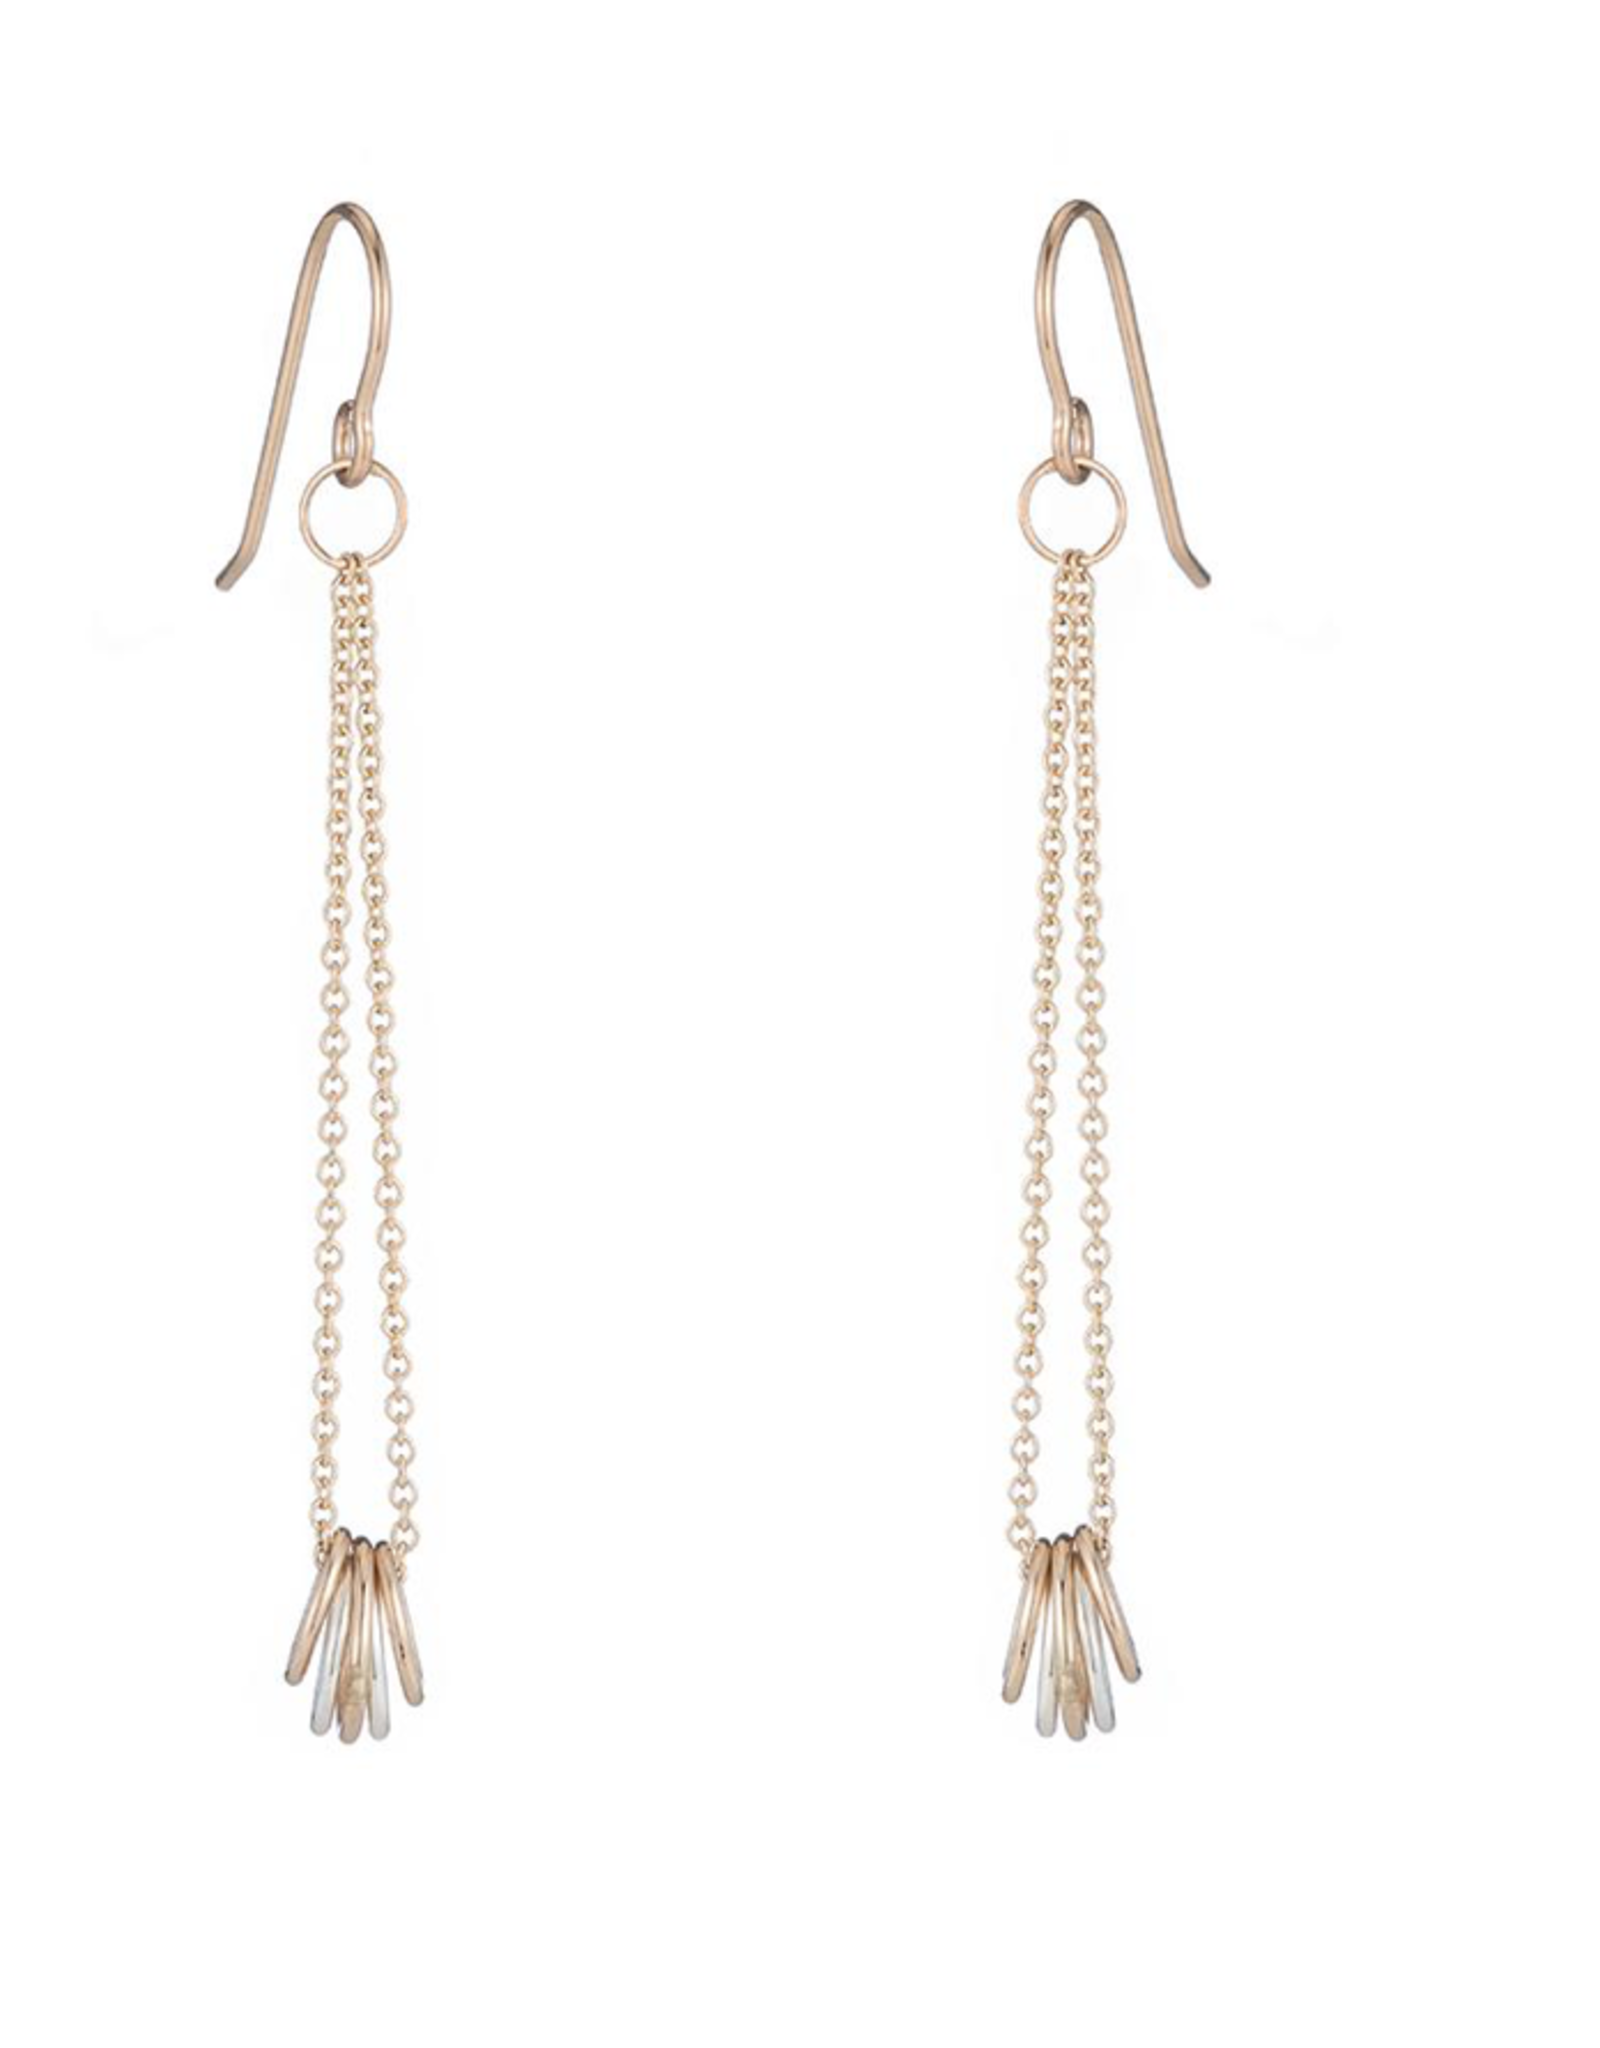 Colleen Mauer Gold and Silver Cinq Earrings